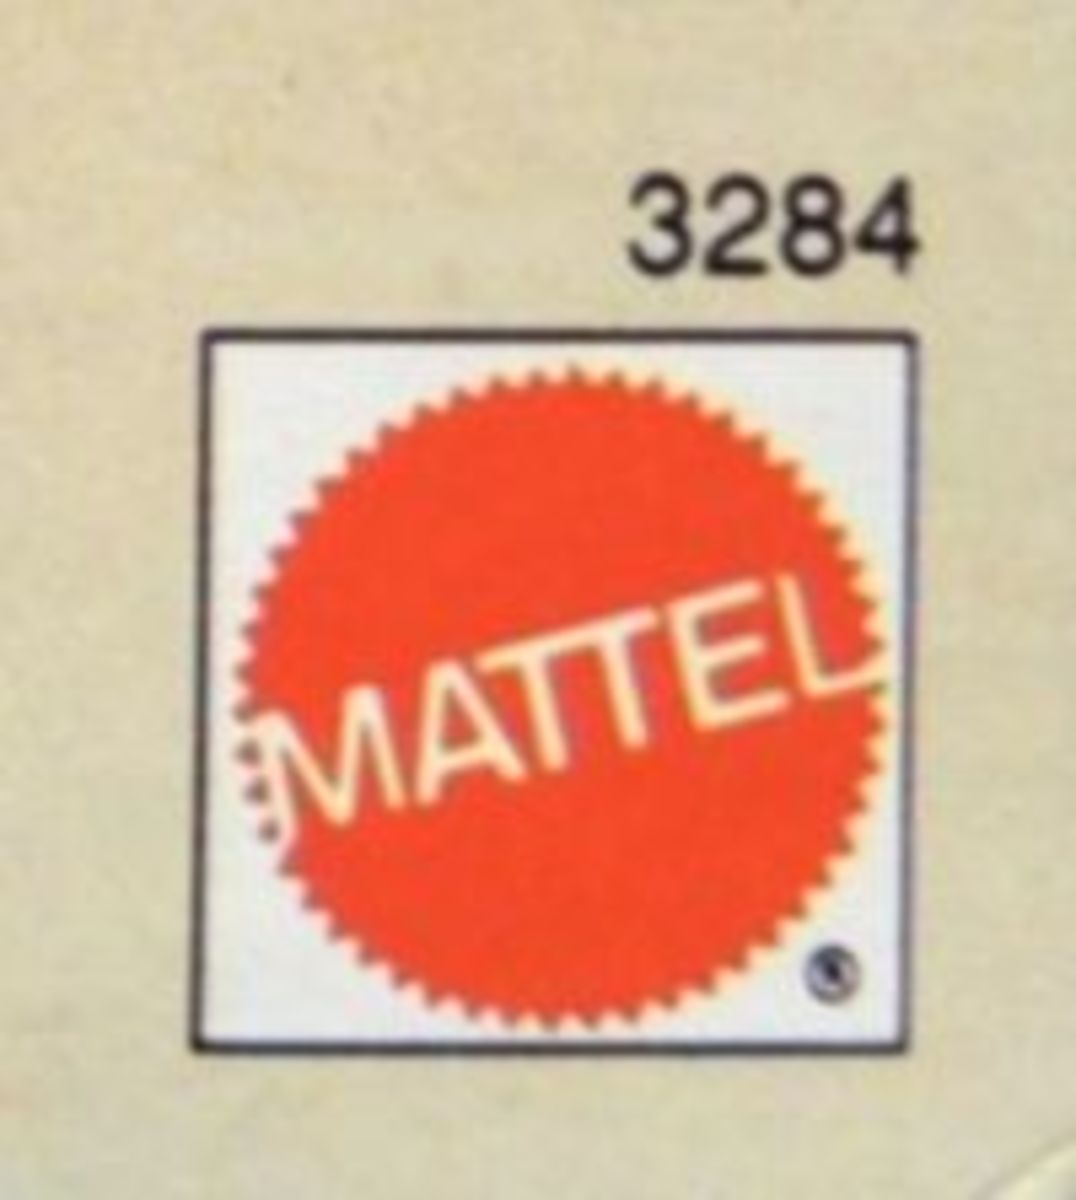 Here is the part Number from a Barbie (3284)